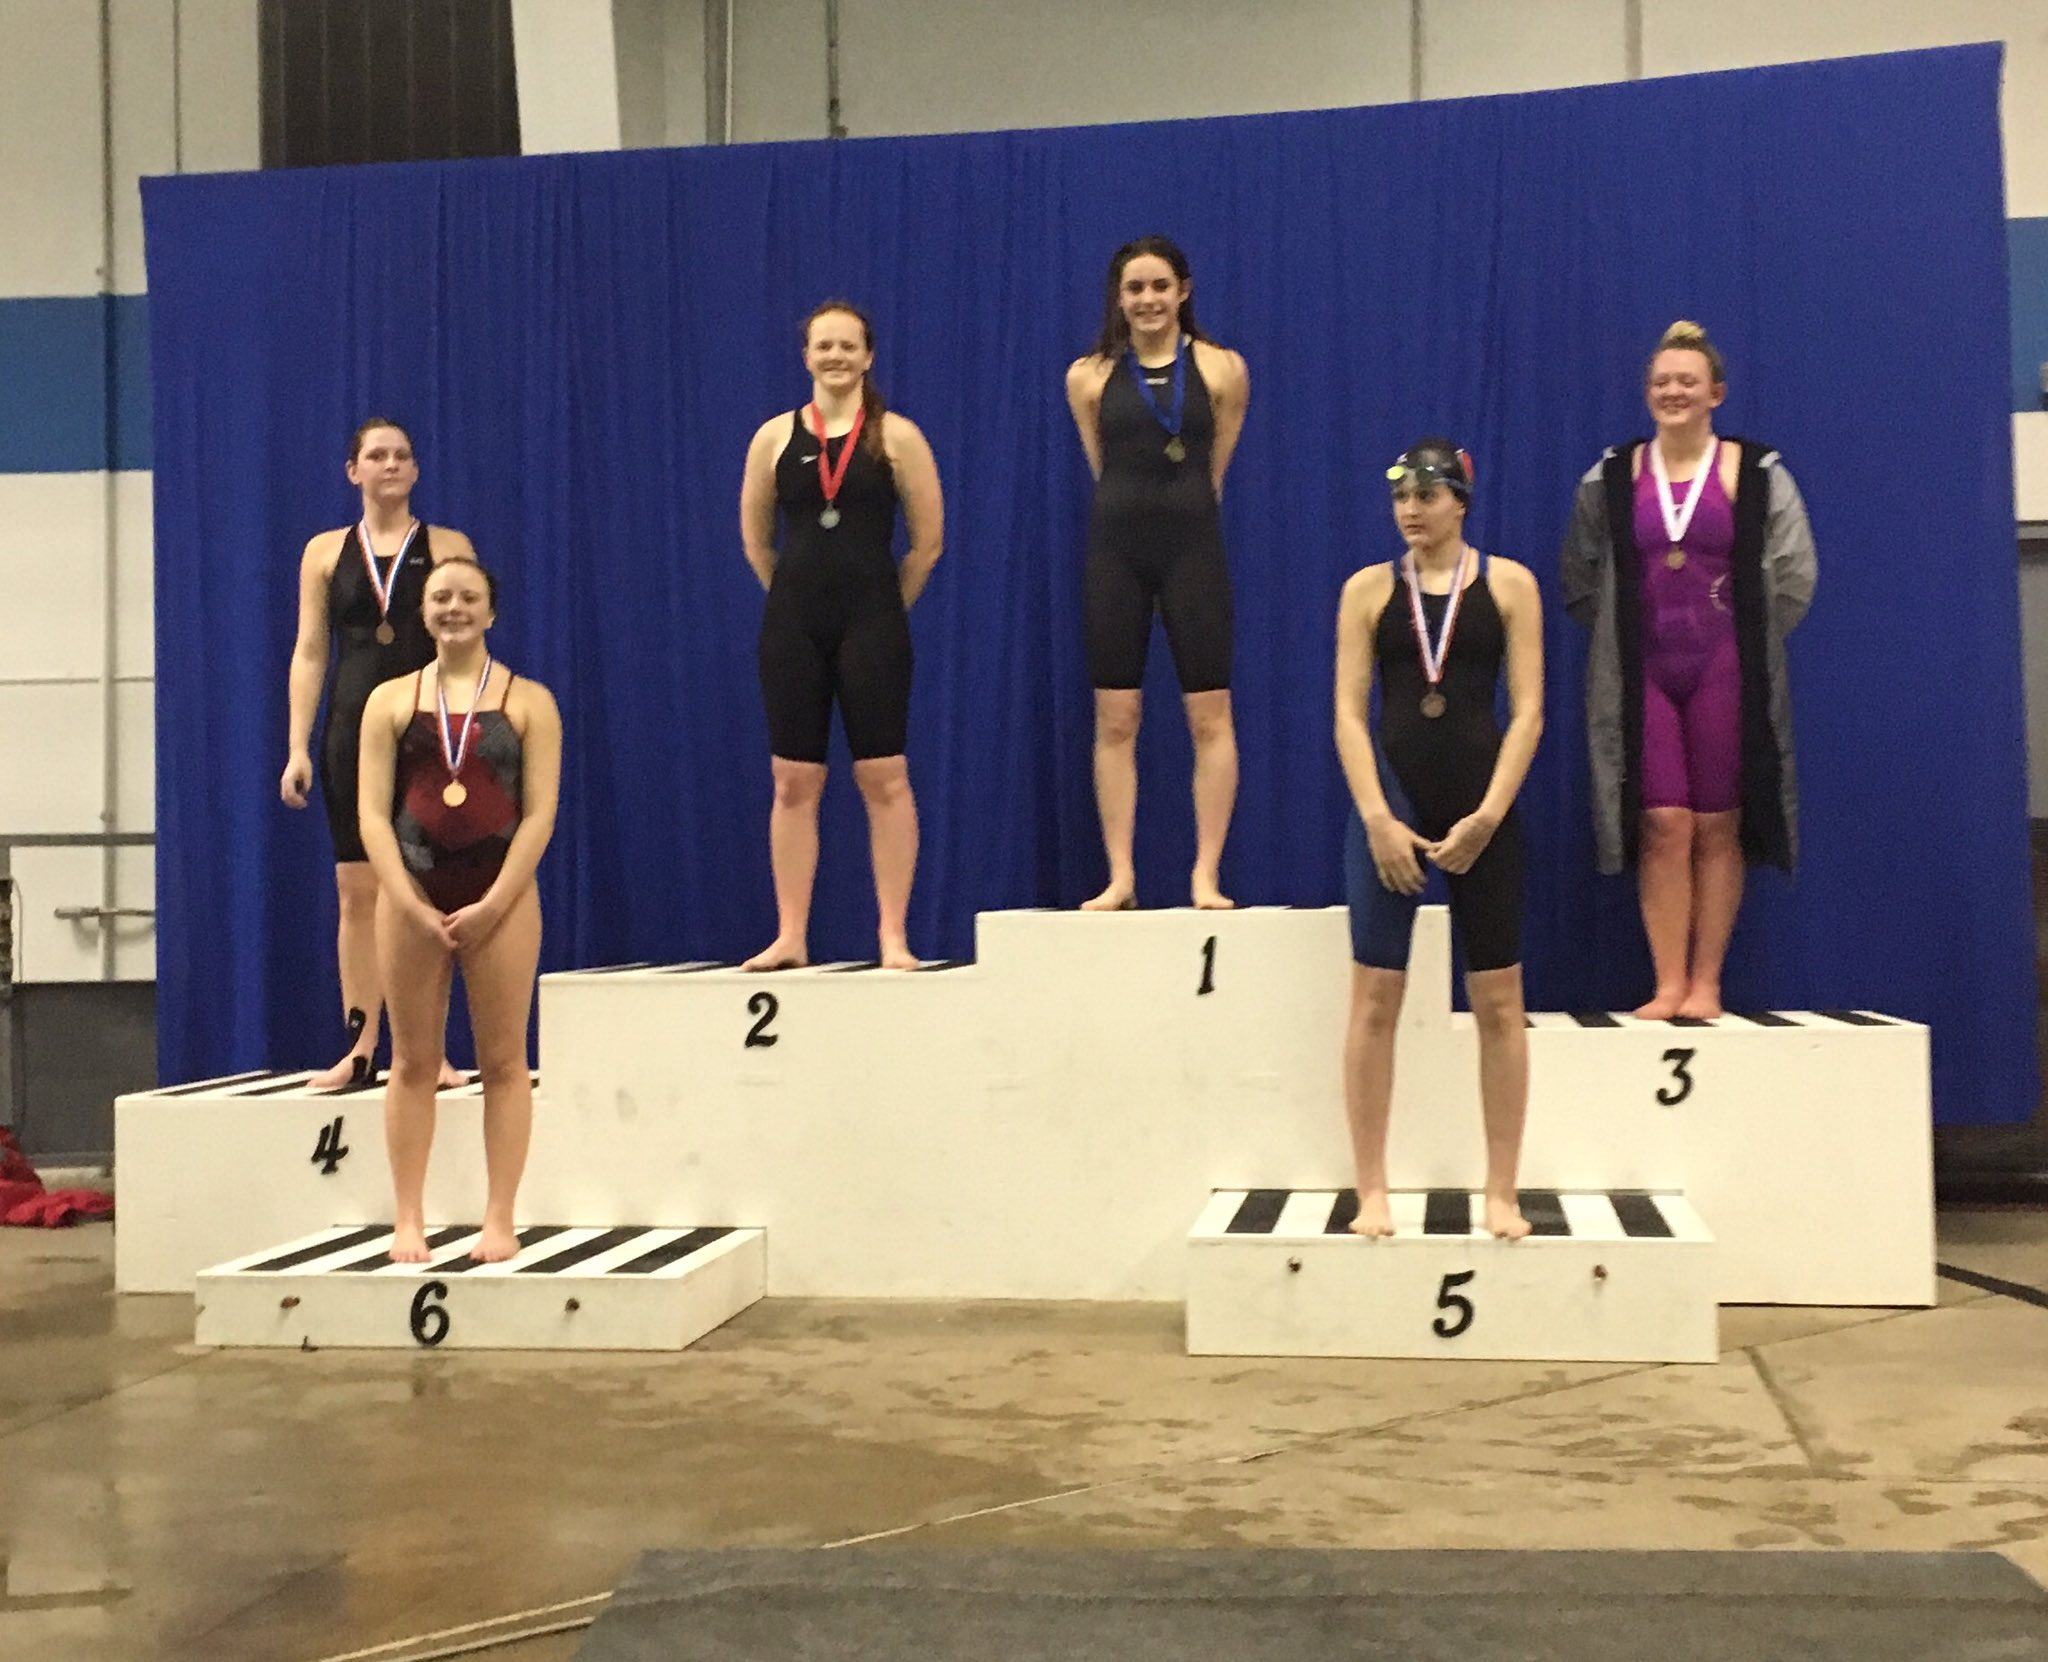 Lr swim dive on twitter 500 free results elise evans 2nd cabrini johnson 1st and a meet - Dive recorder results ...